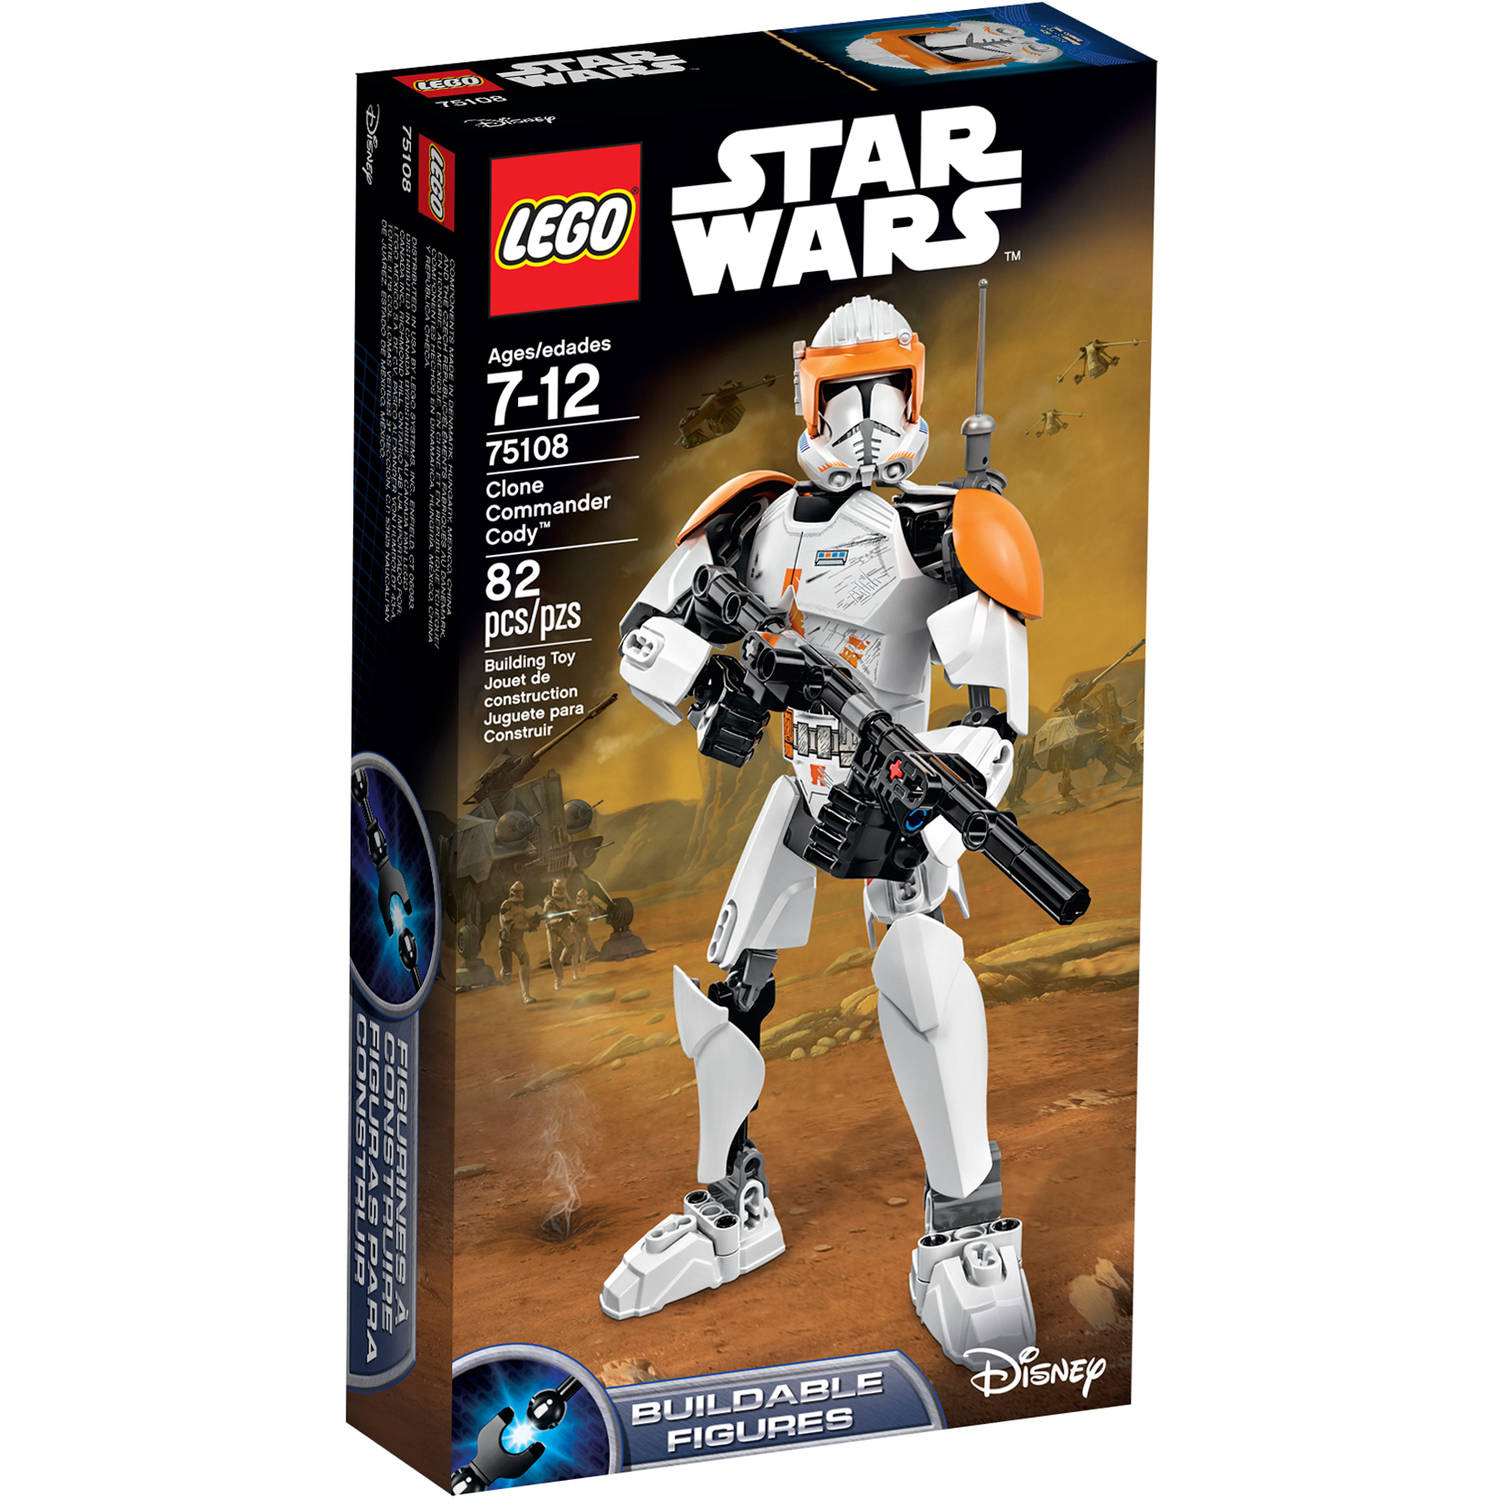 "LEGO Star Wars Clone Commander Cody"" 75108"